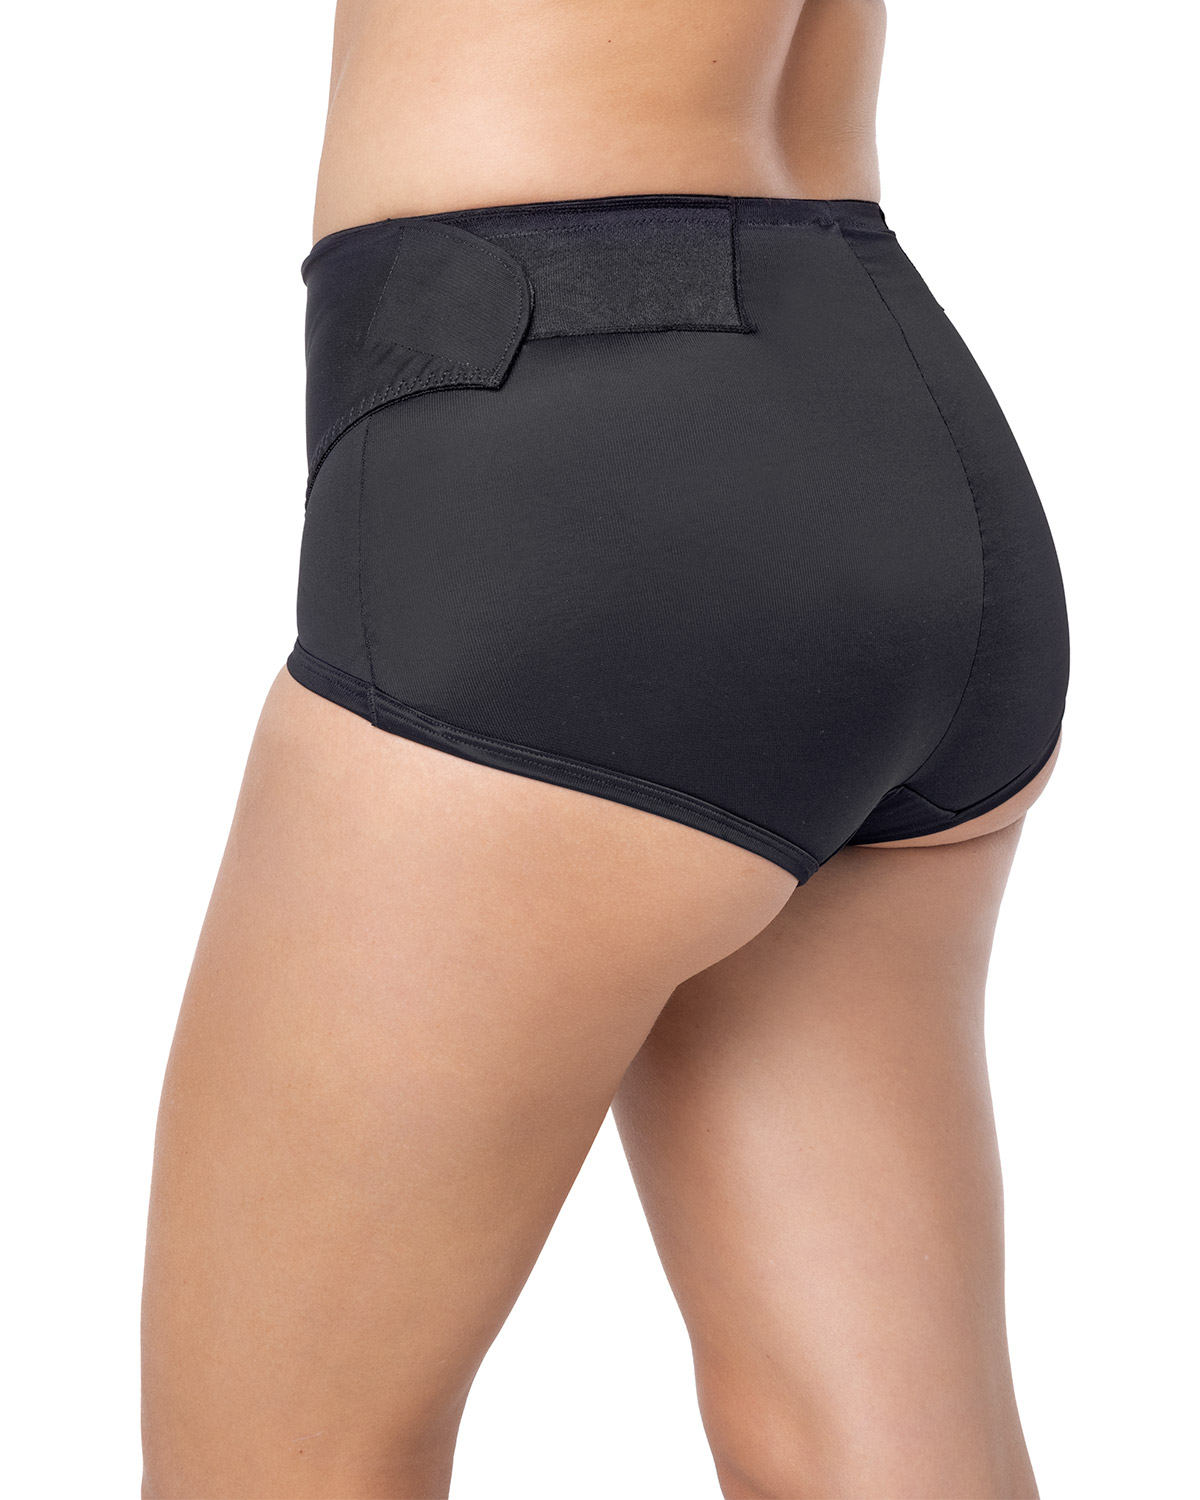 postpartum panty with adjustable belly wrap-700- Black-MainImage